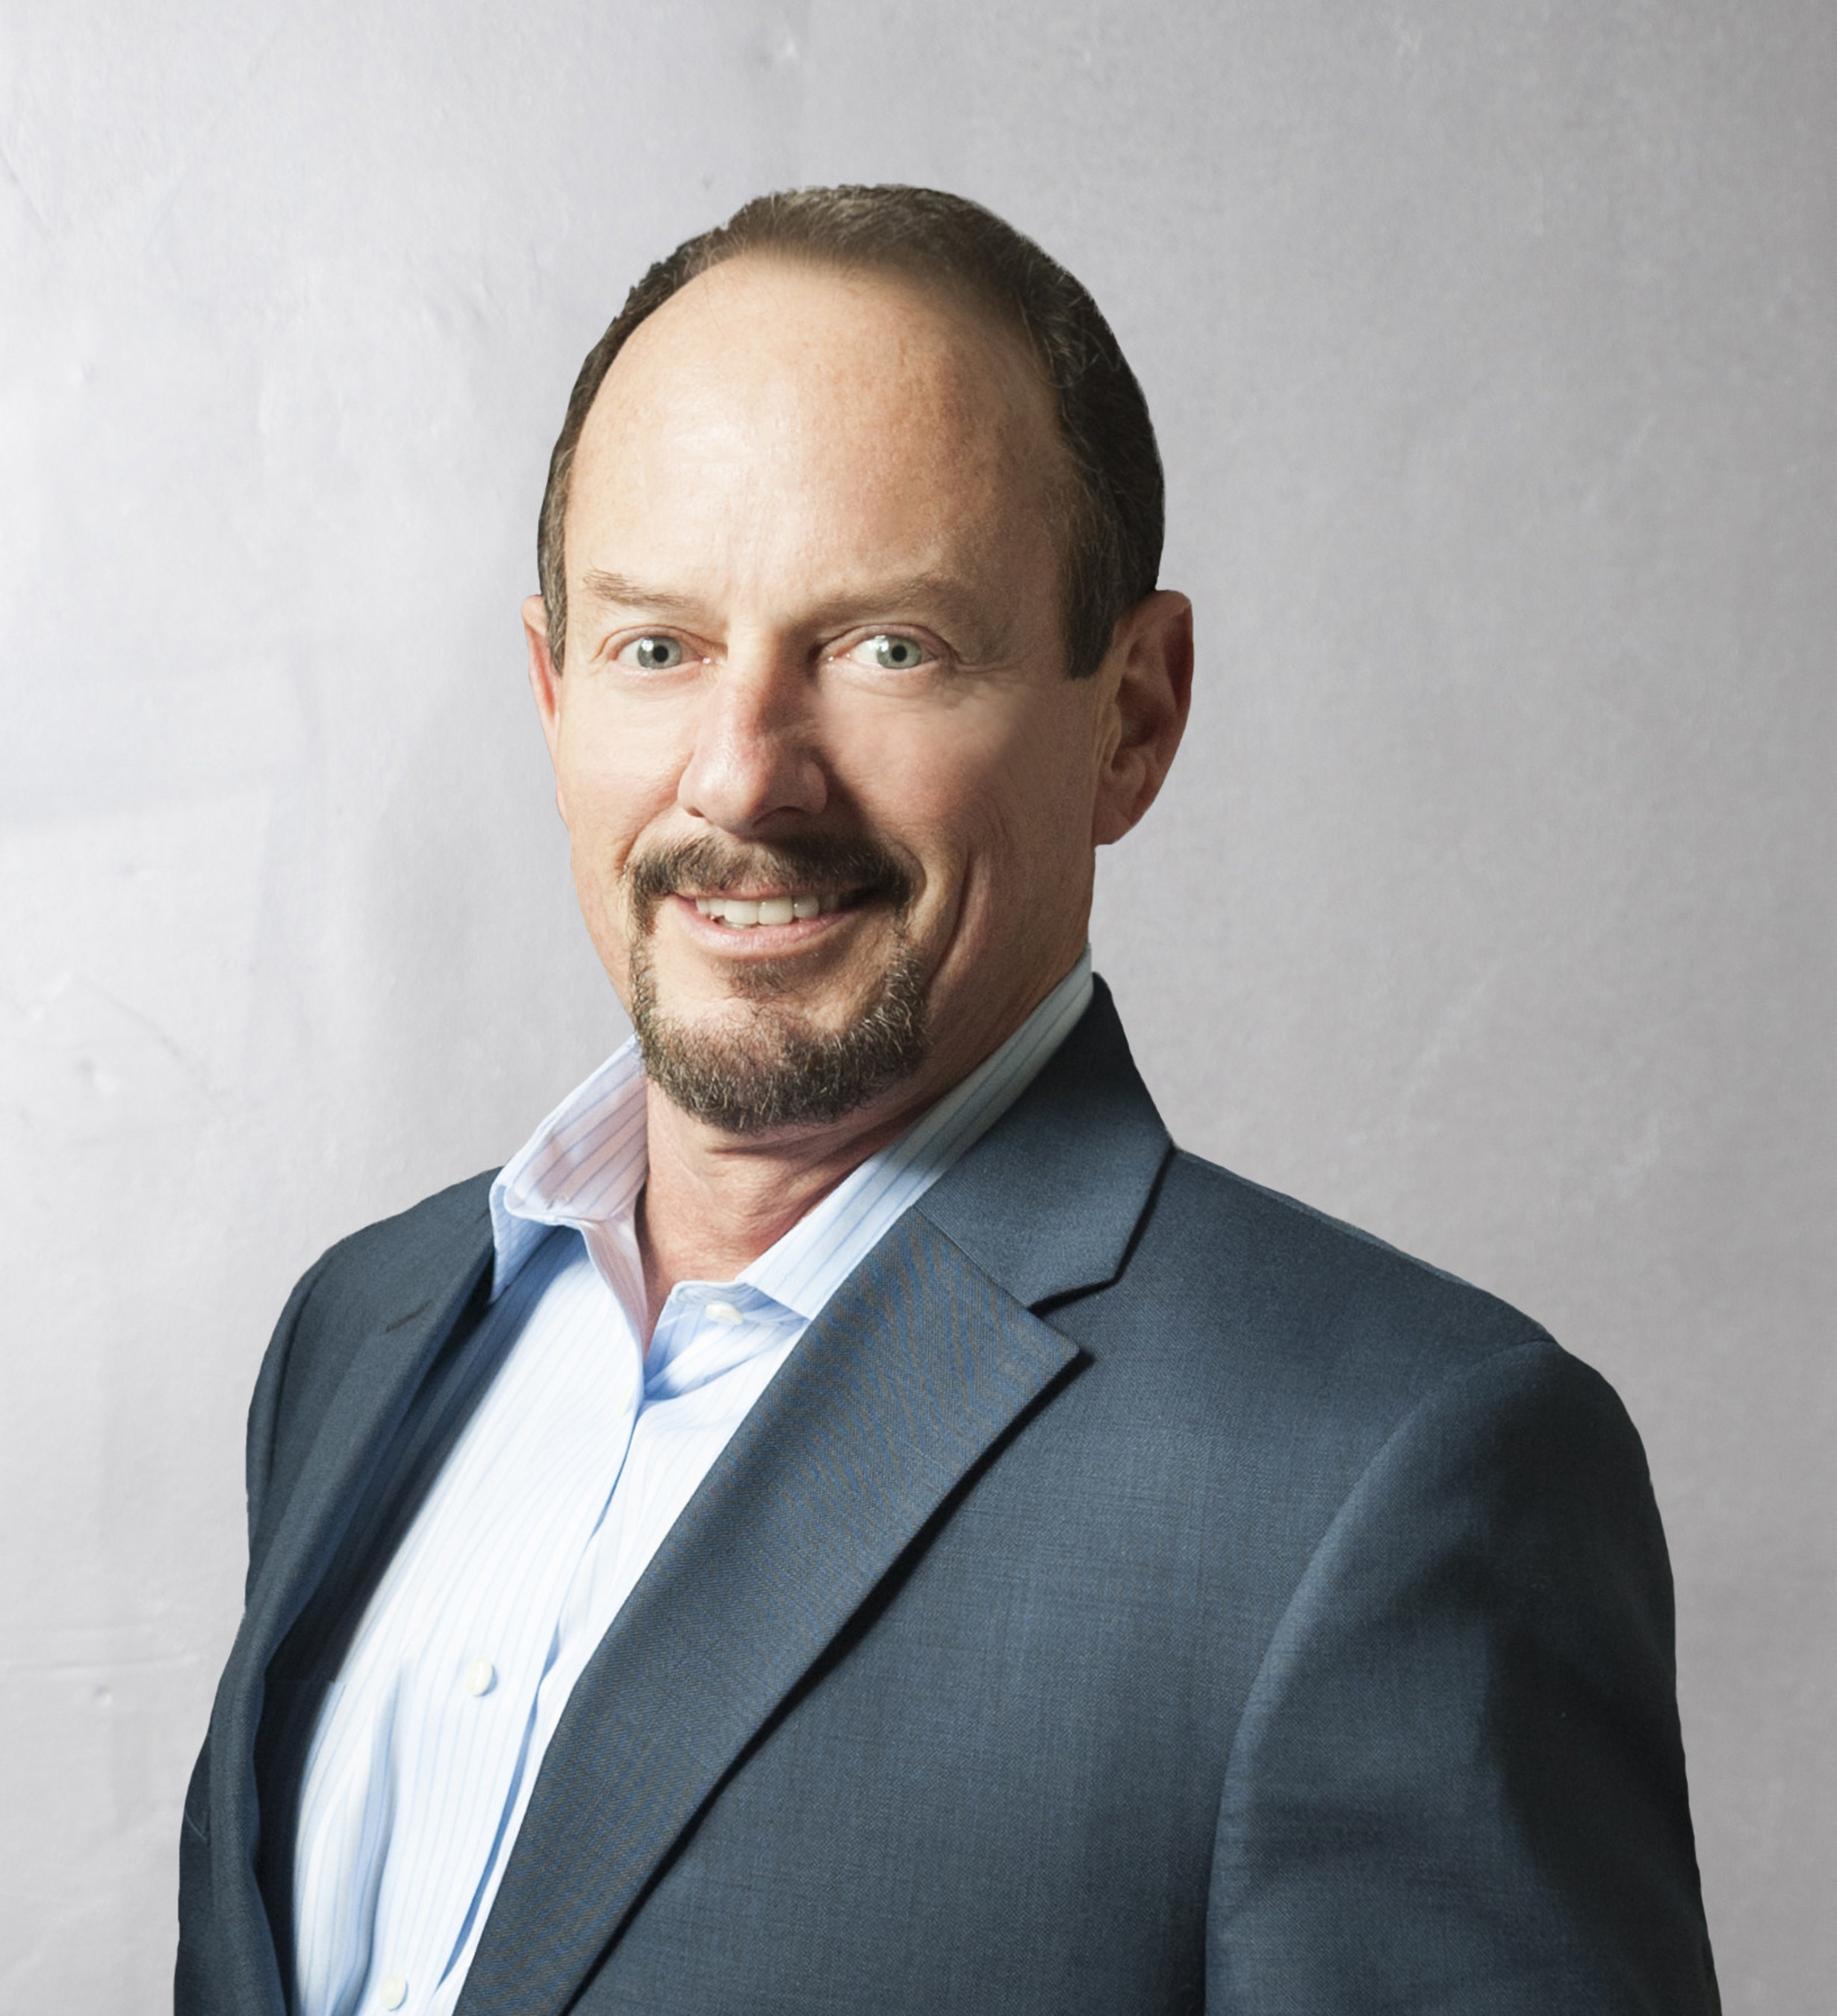 BioPact Ventures, LLC Announces Appointment of Joe Dillon as Chief Executive Officer